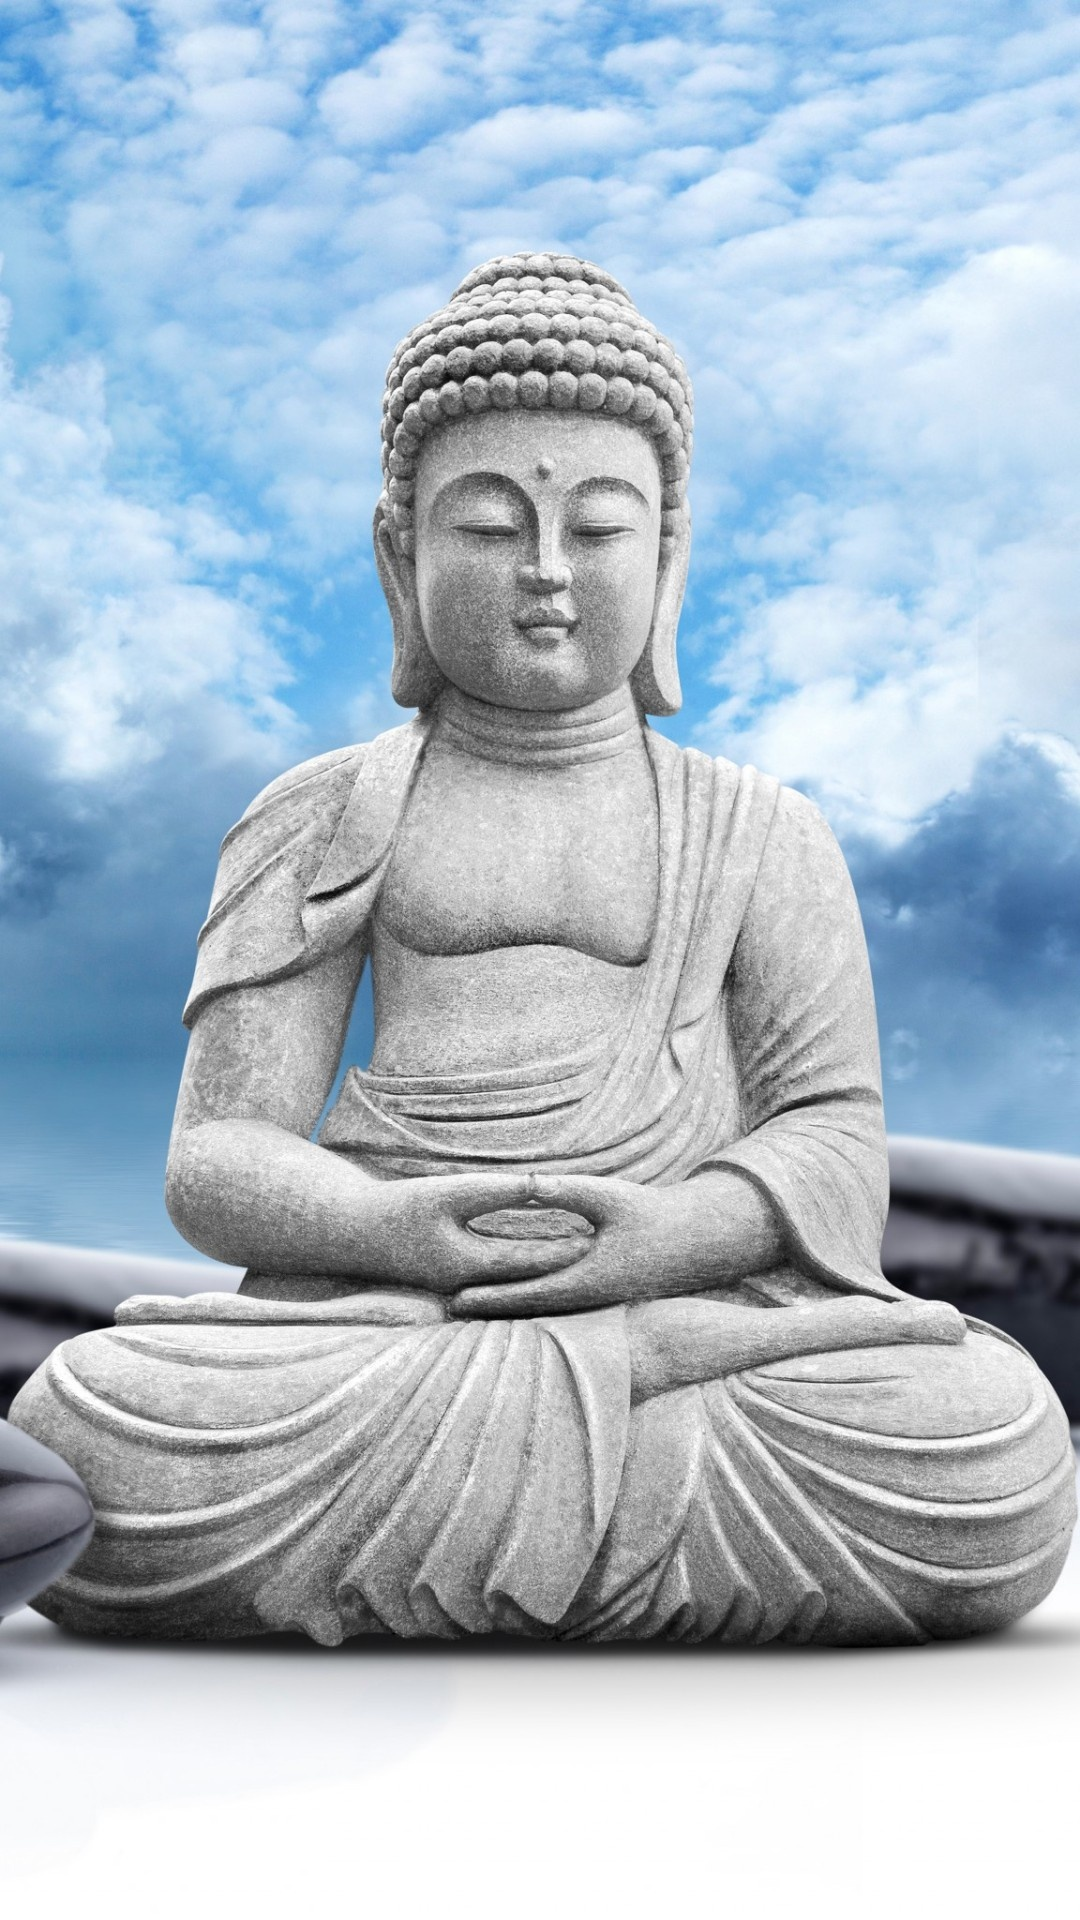 Flower Images 3d Wallpapers Lord Buddha Statue Sky Clouds Wallpapers 1080x1920 588396